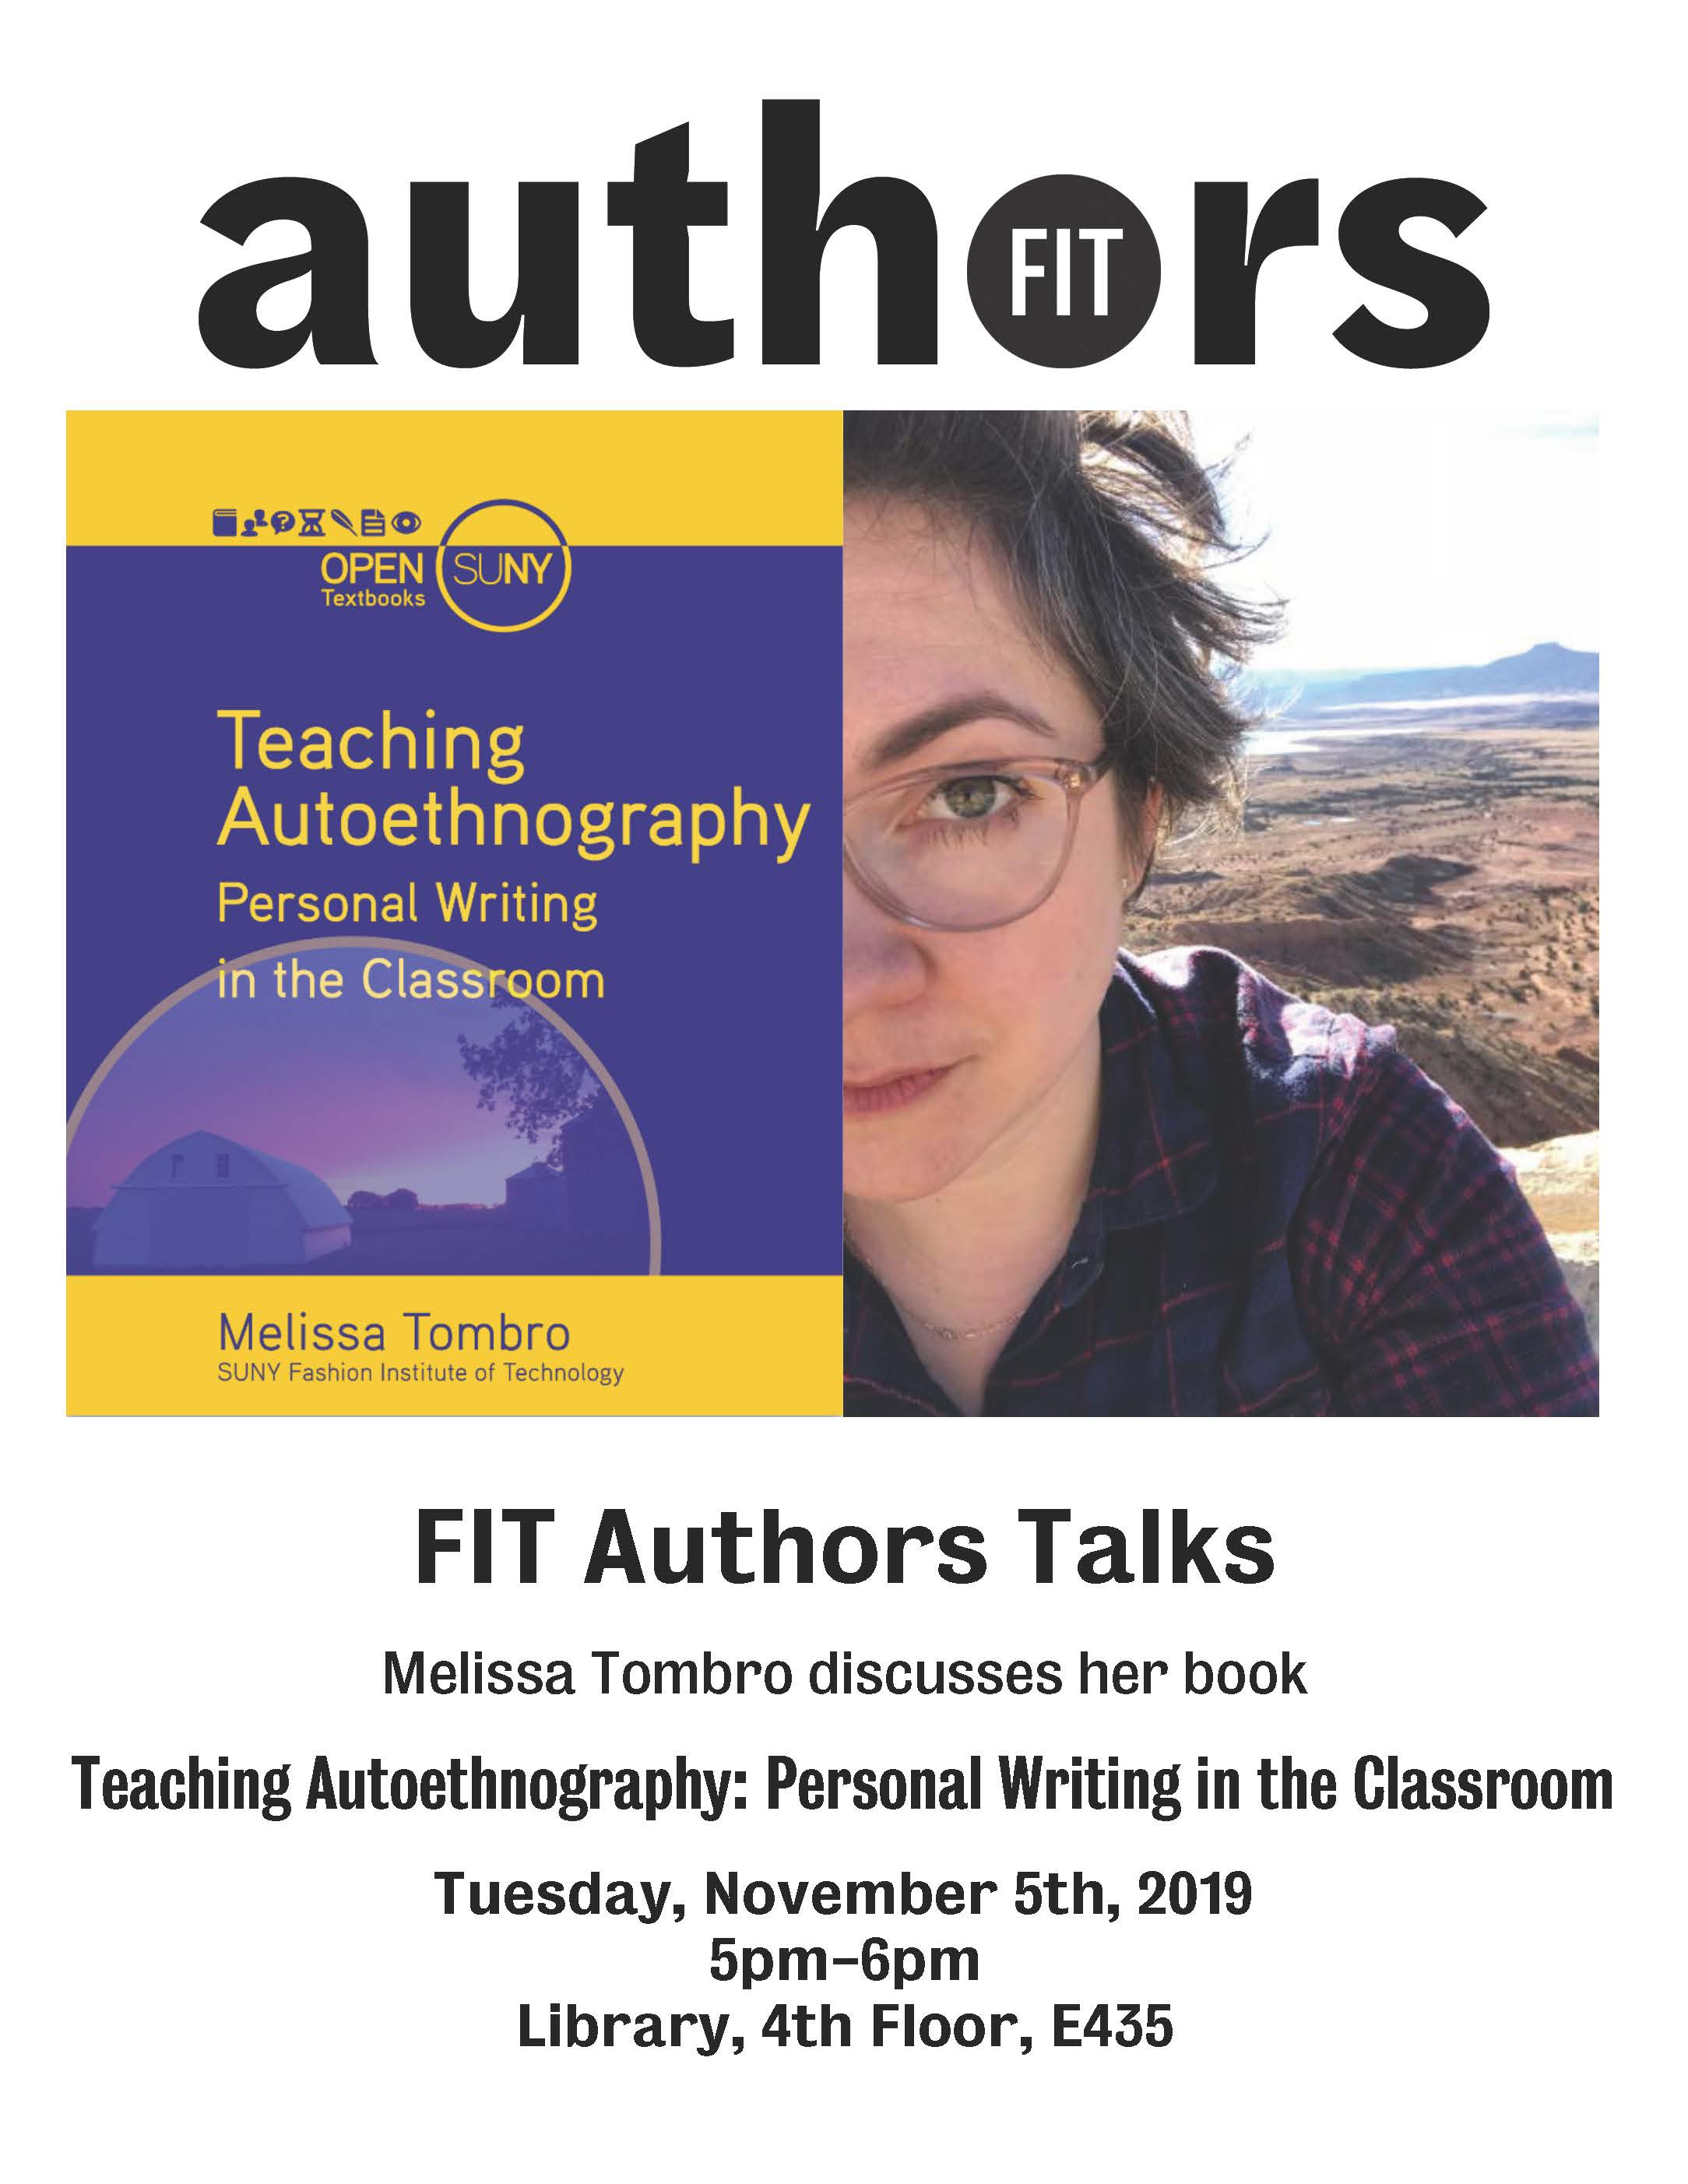 authors talks flyer